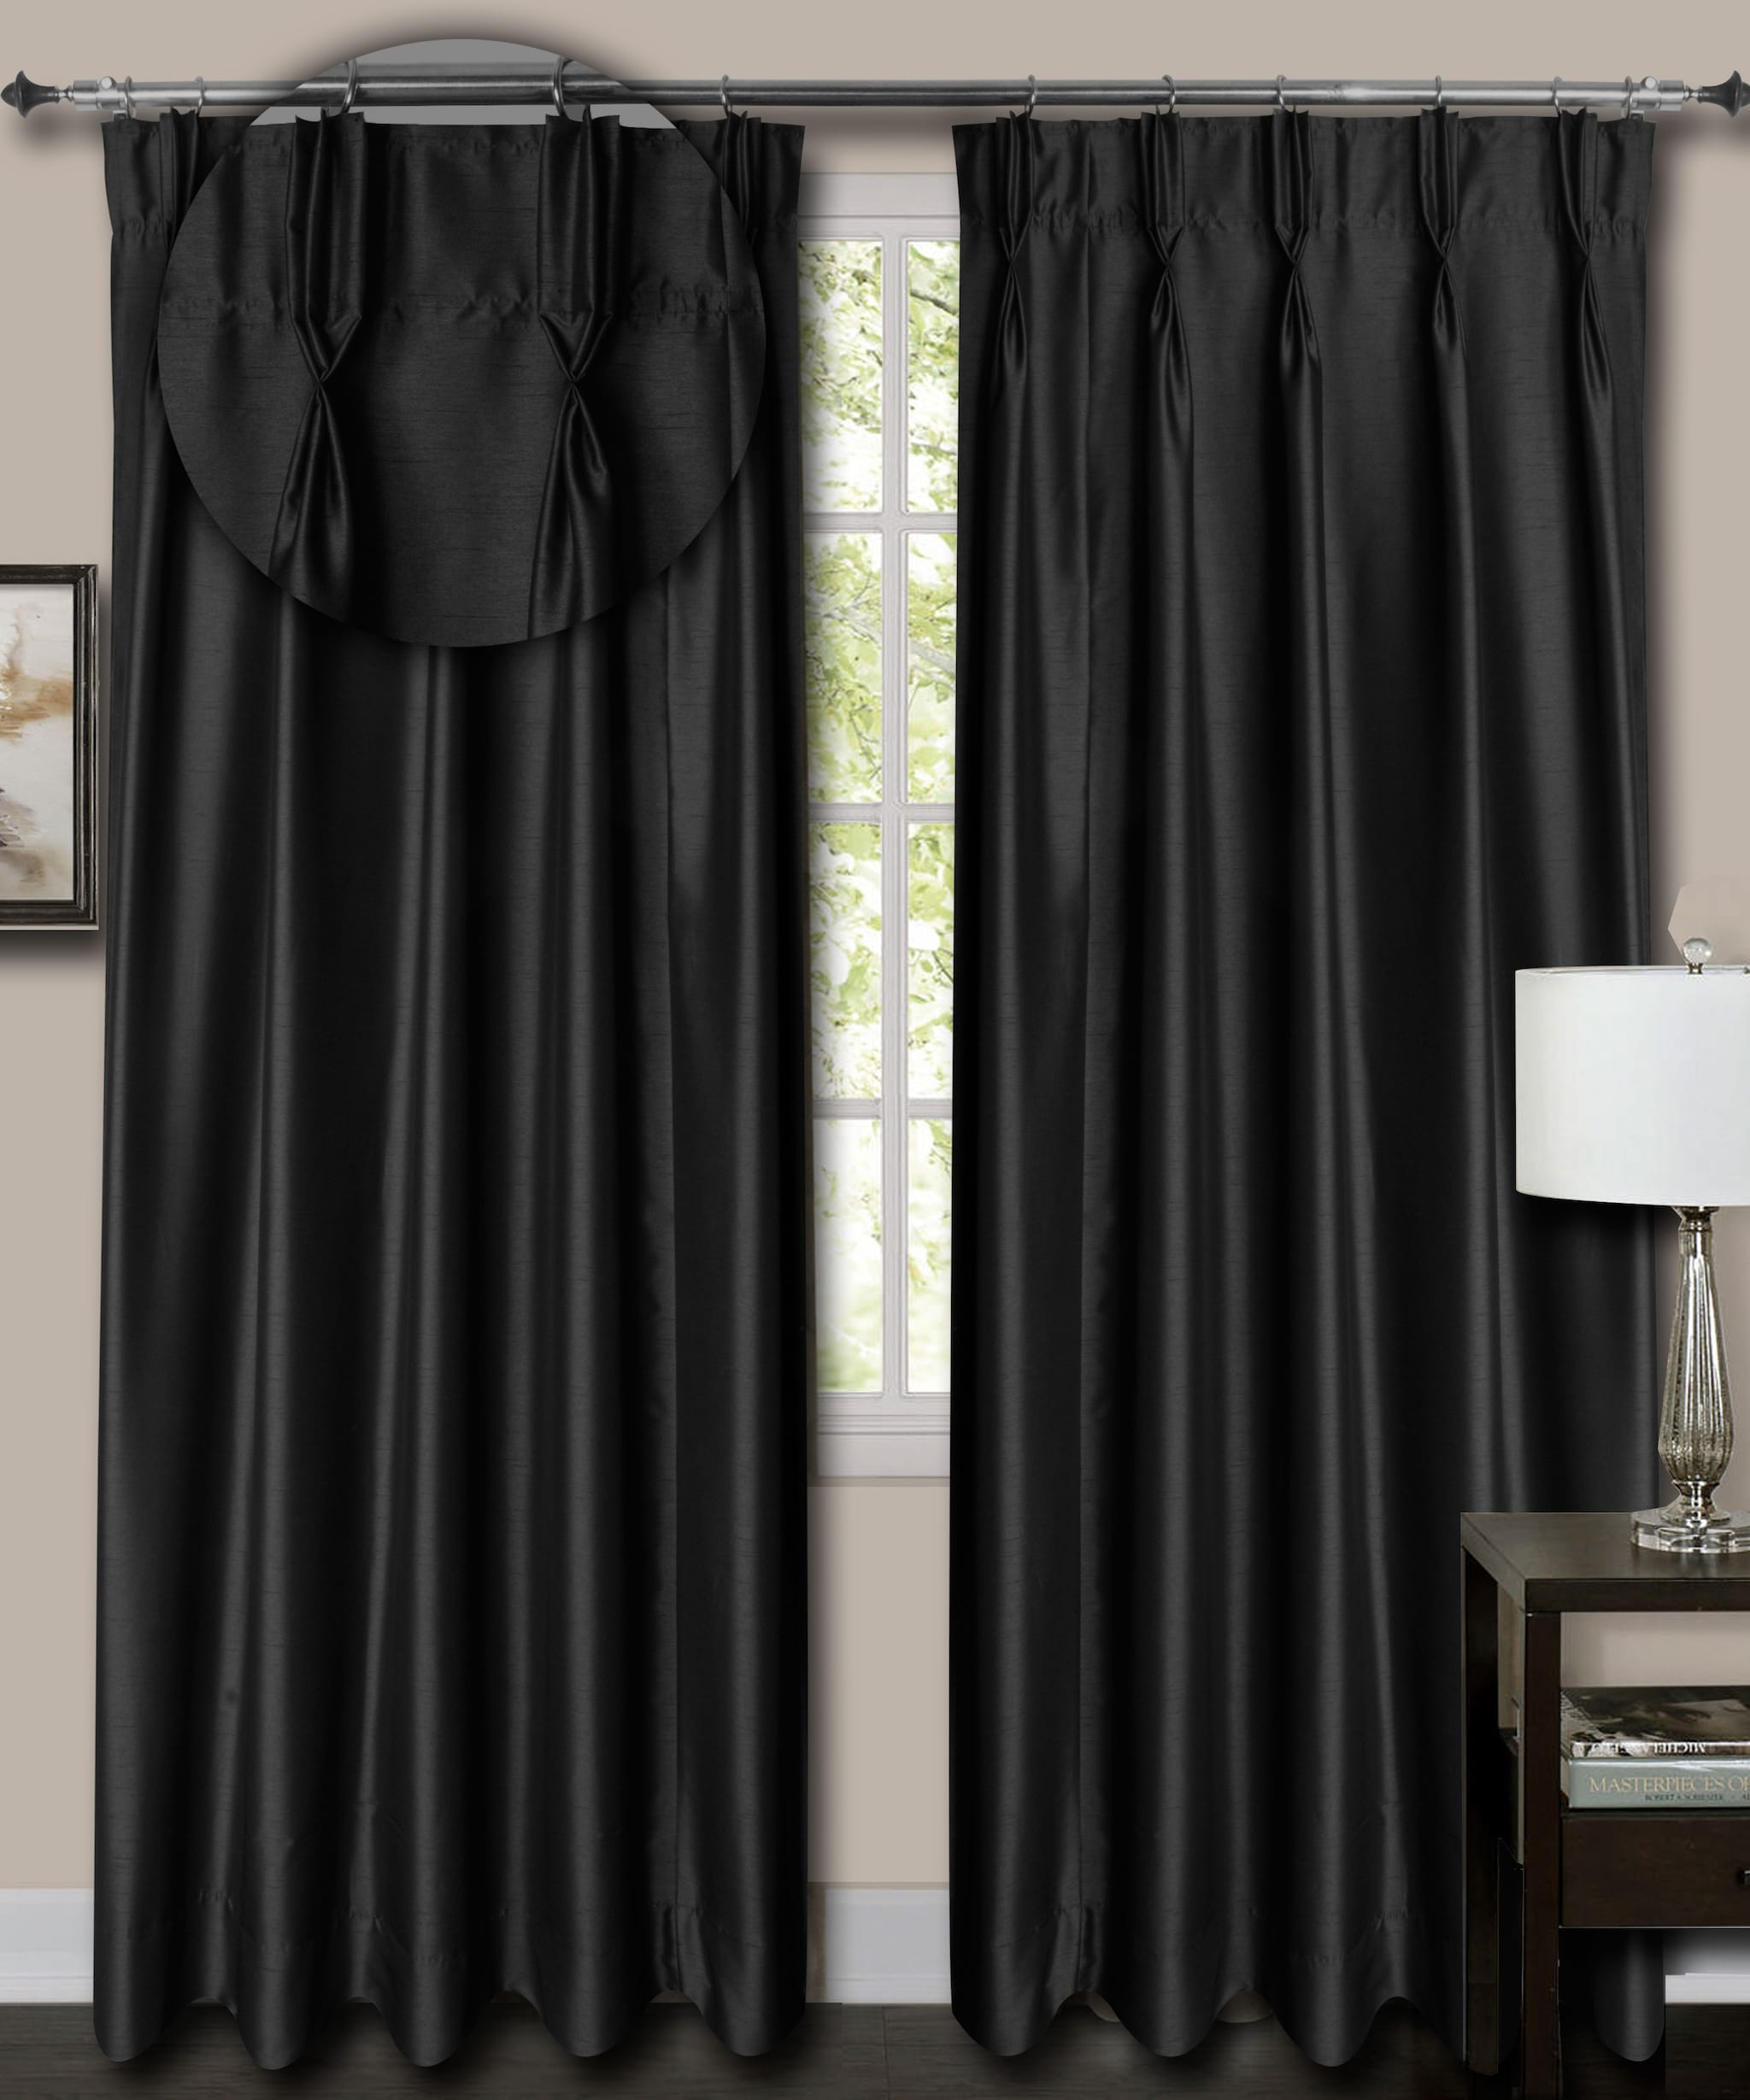 "French Pleat Top Black Faux Silk Dupioni Curtains. (39"" Wide,10 Feet Long,Thick Lining)"